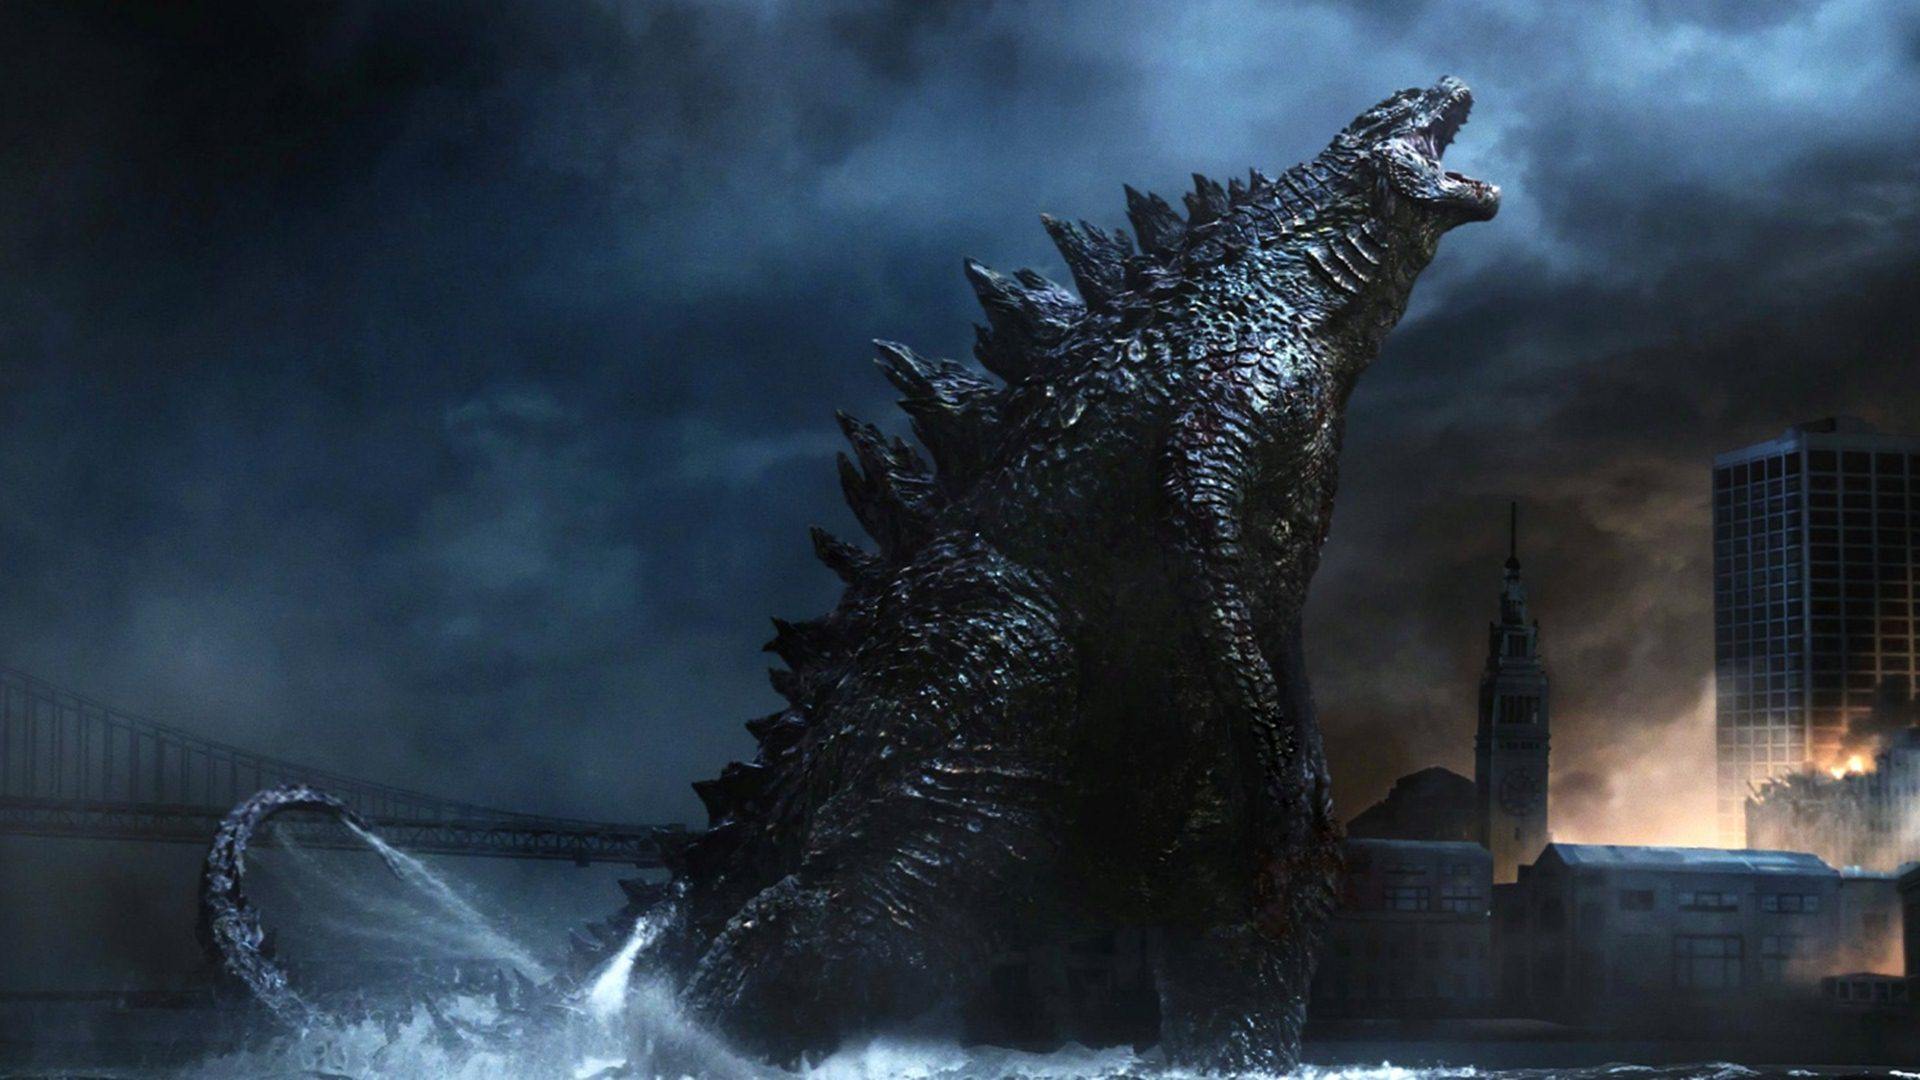 godzilla 2014 godzilla 2014 hd desktop wallpaper jpg 06 aug 2014 1920    Godzilla 2014 Wallpaper Roar